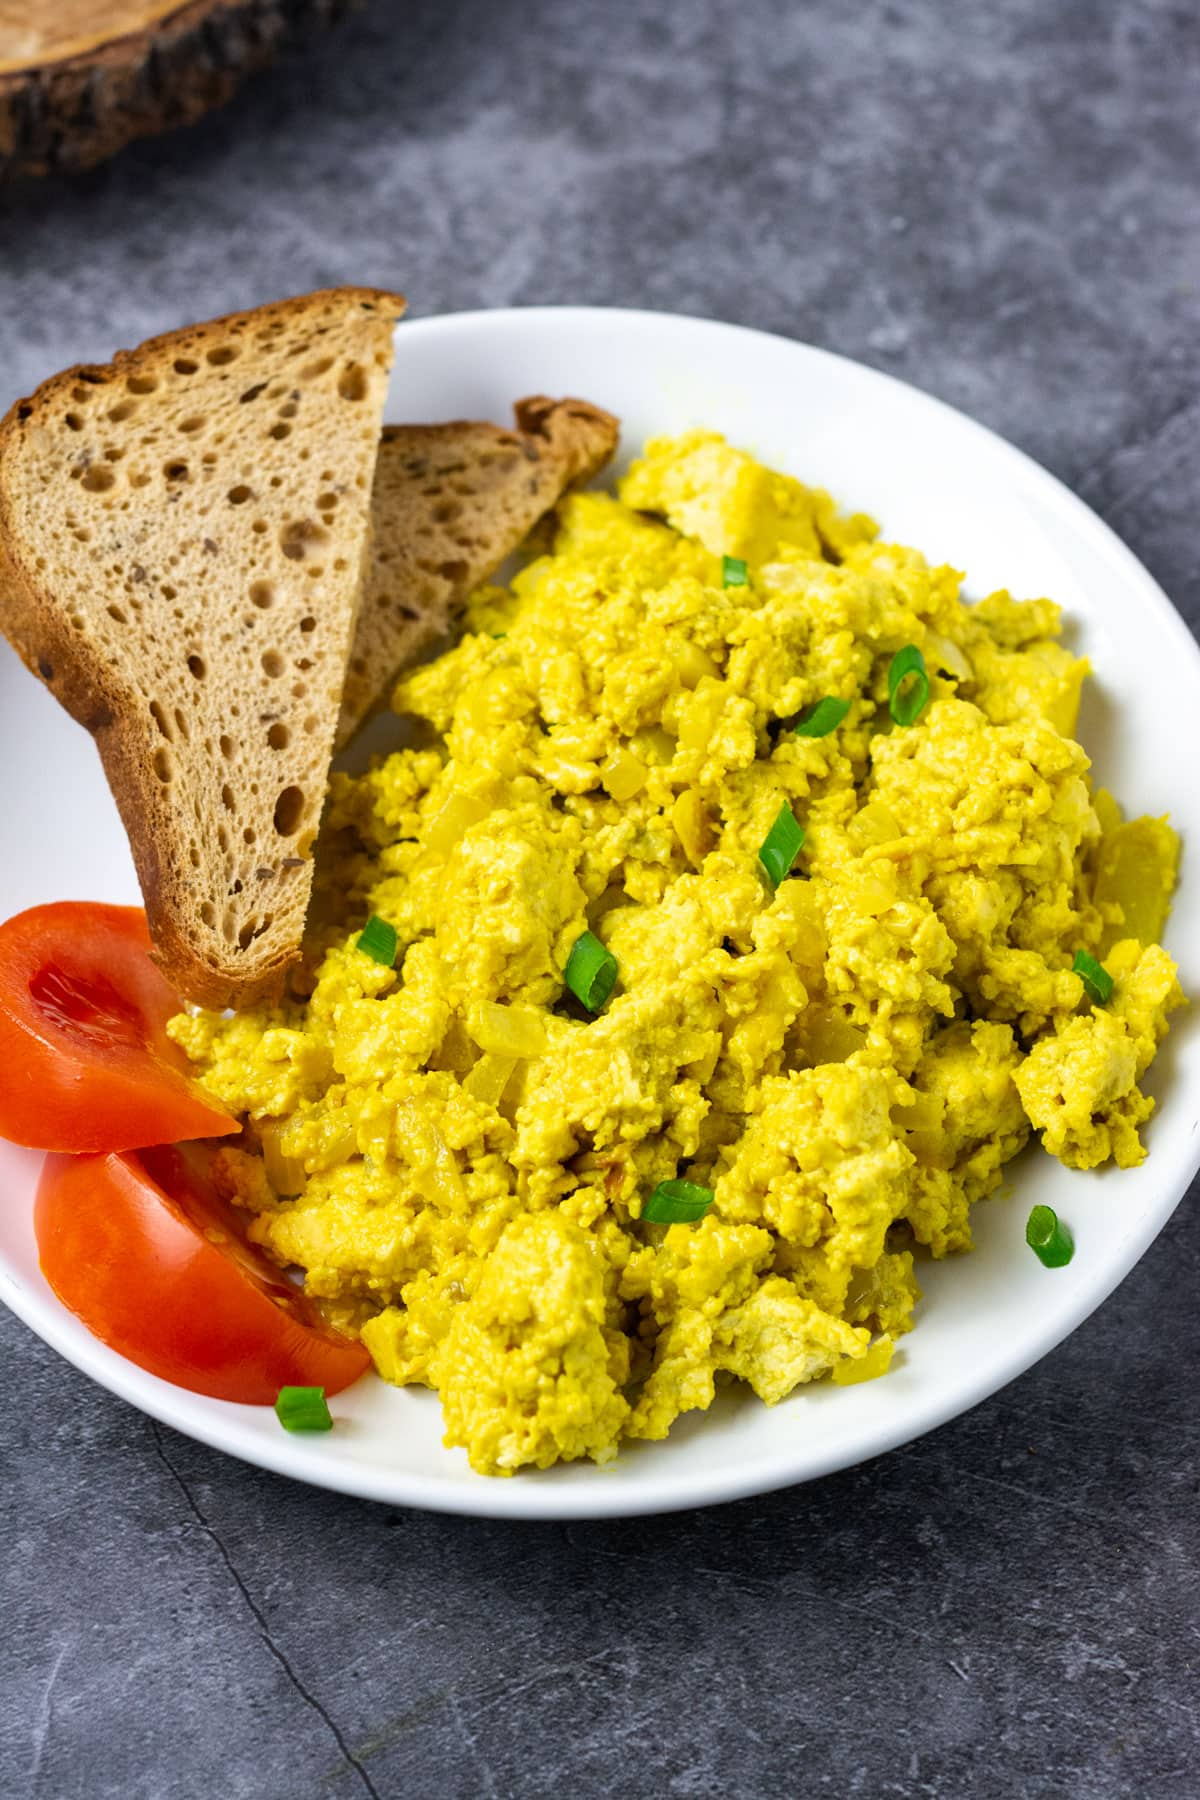 tofu scramble with pieces of tomato and bread on a white plate